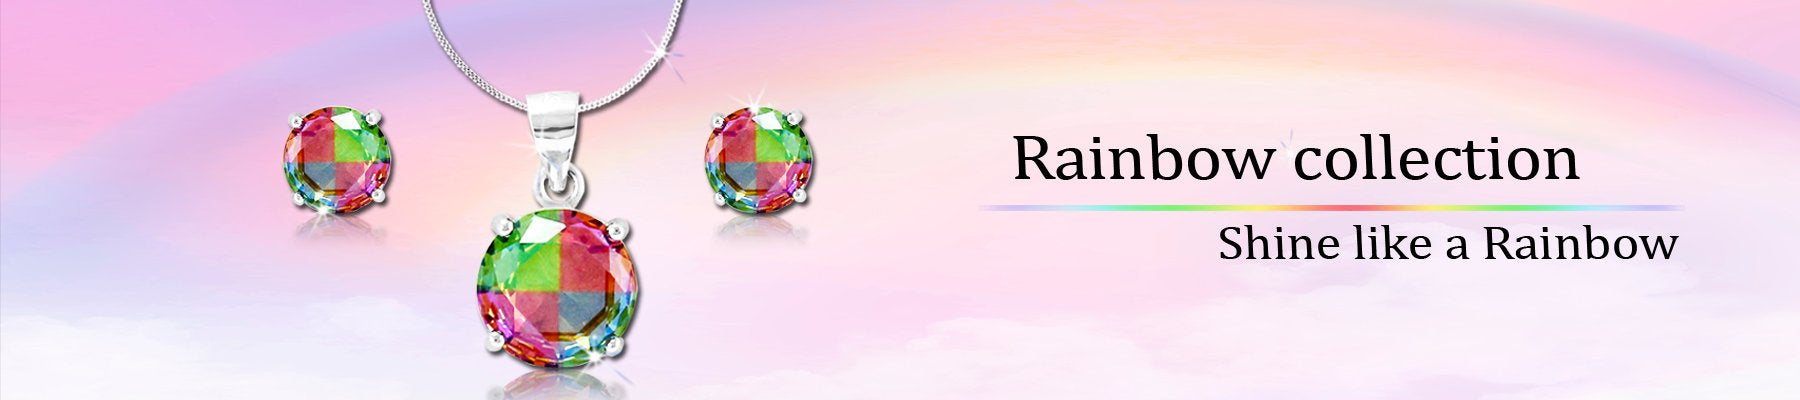 Republic Day Free Earrings Offer2